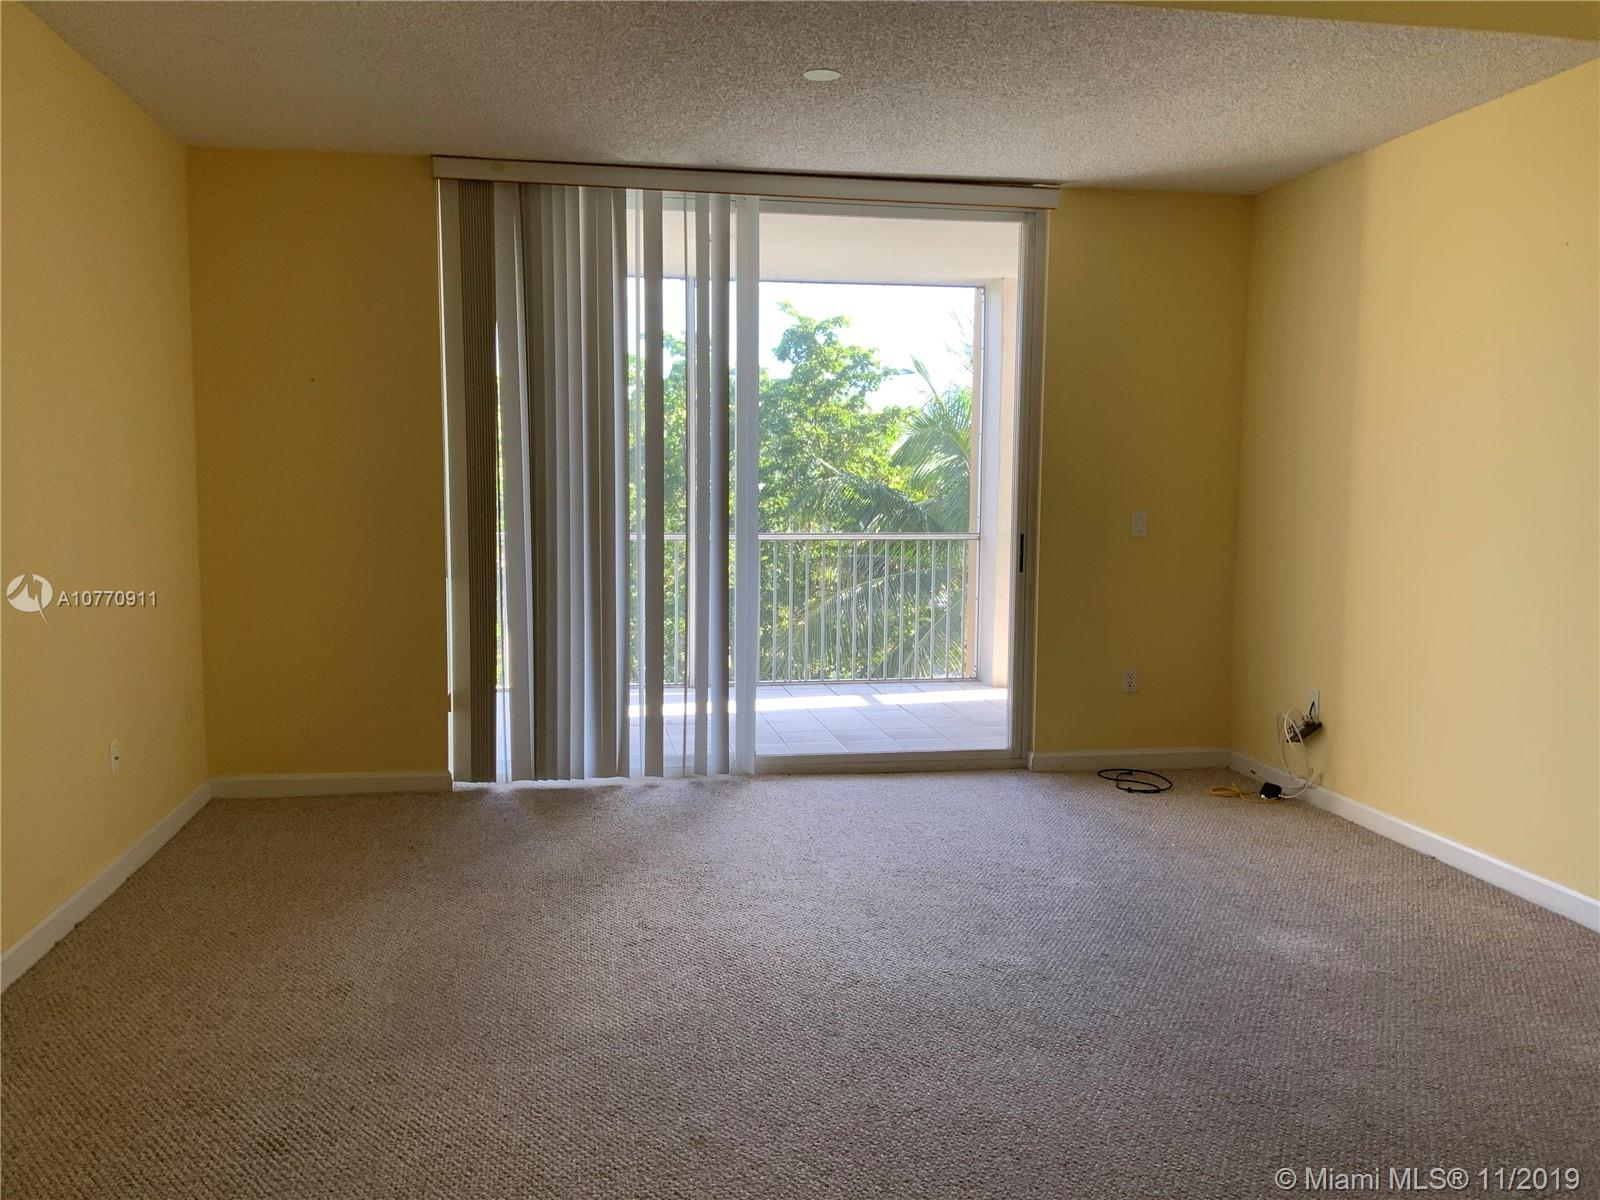 9805 NW 52nd St #416 For Sale A10770911, FL